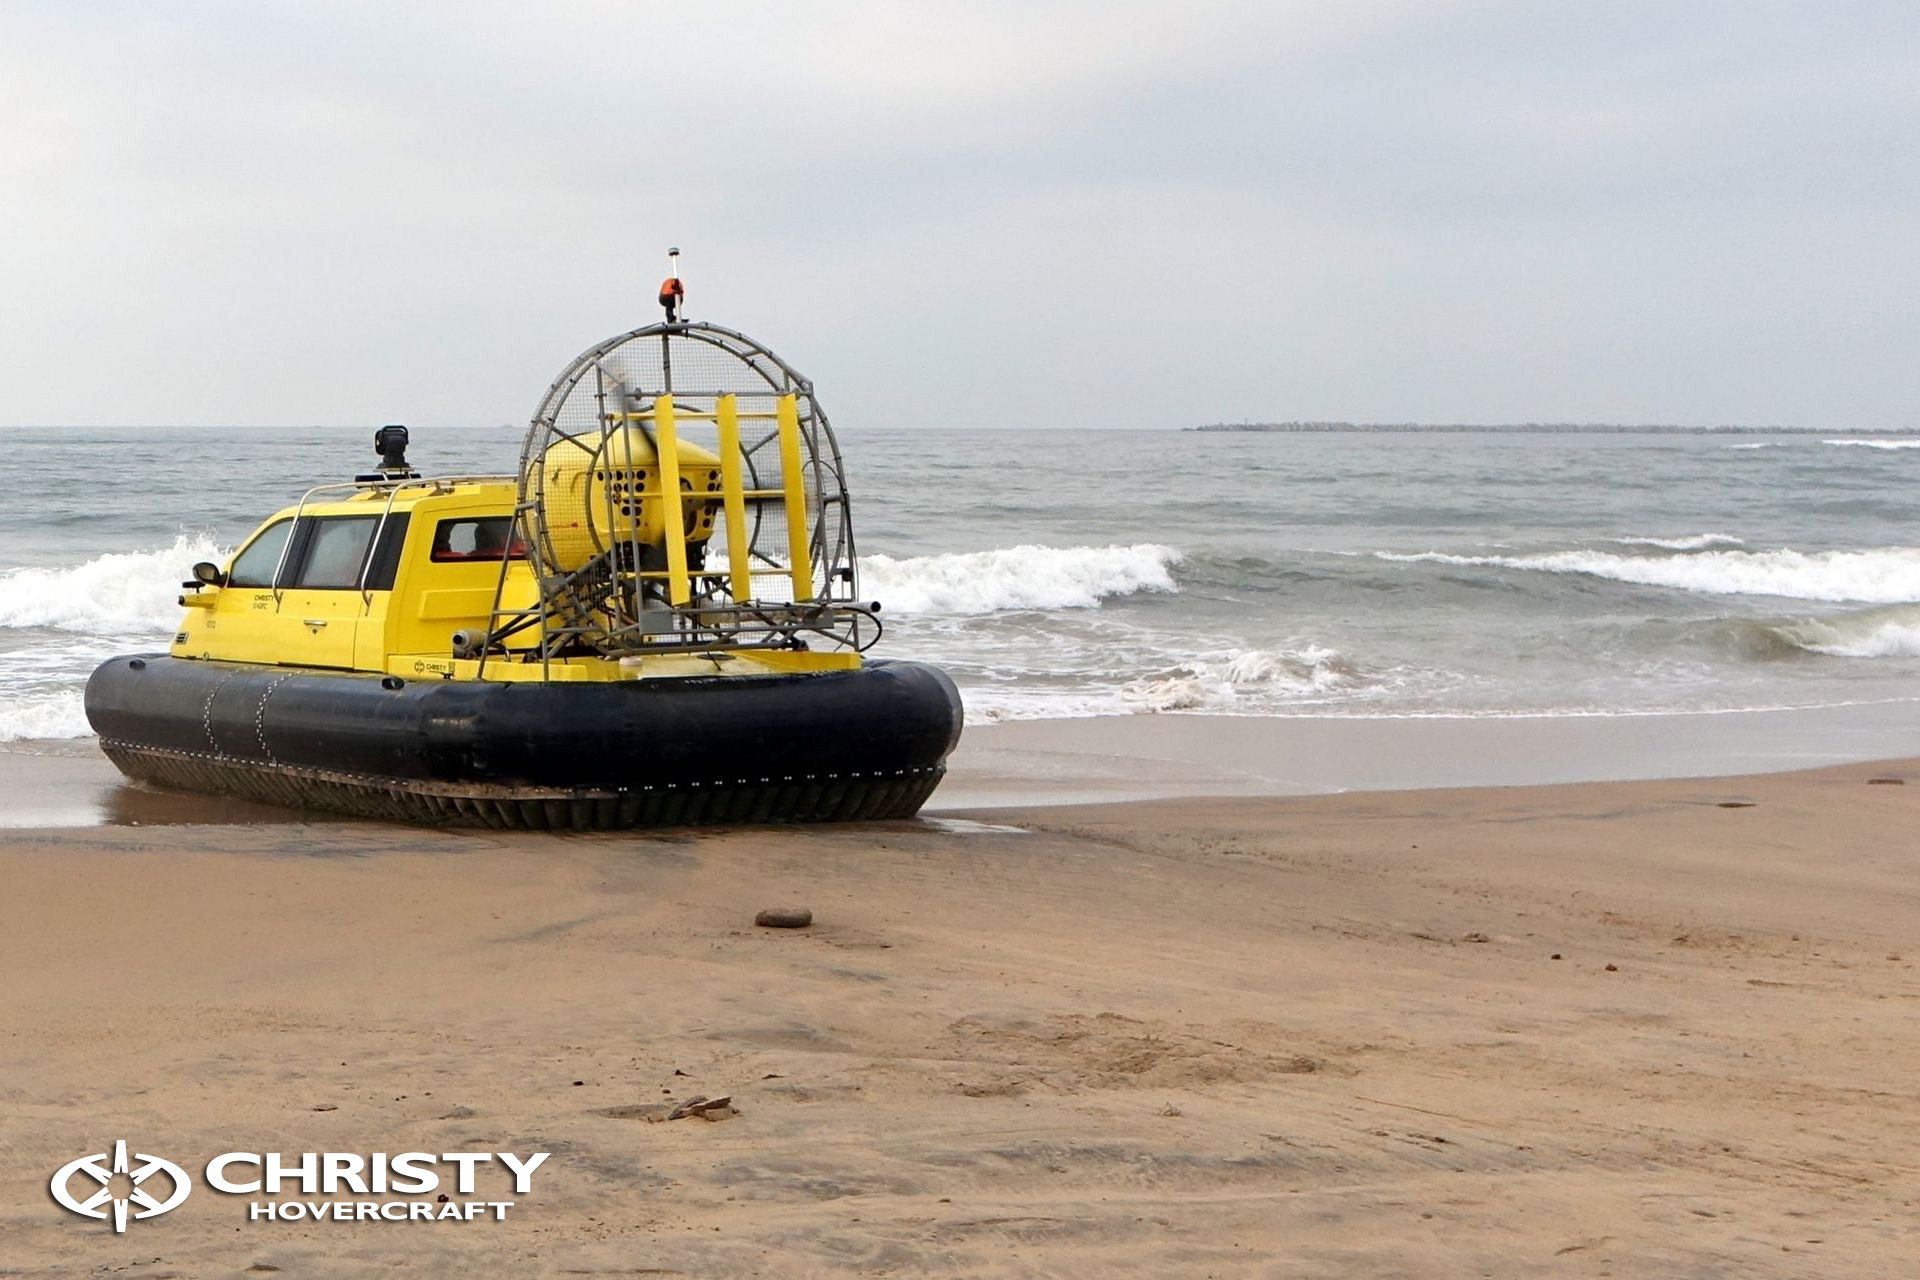 hovercraft-christy-5_7series-41.jpg | фото №17